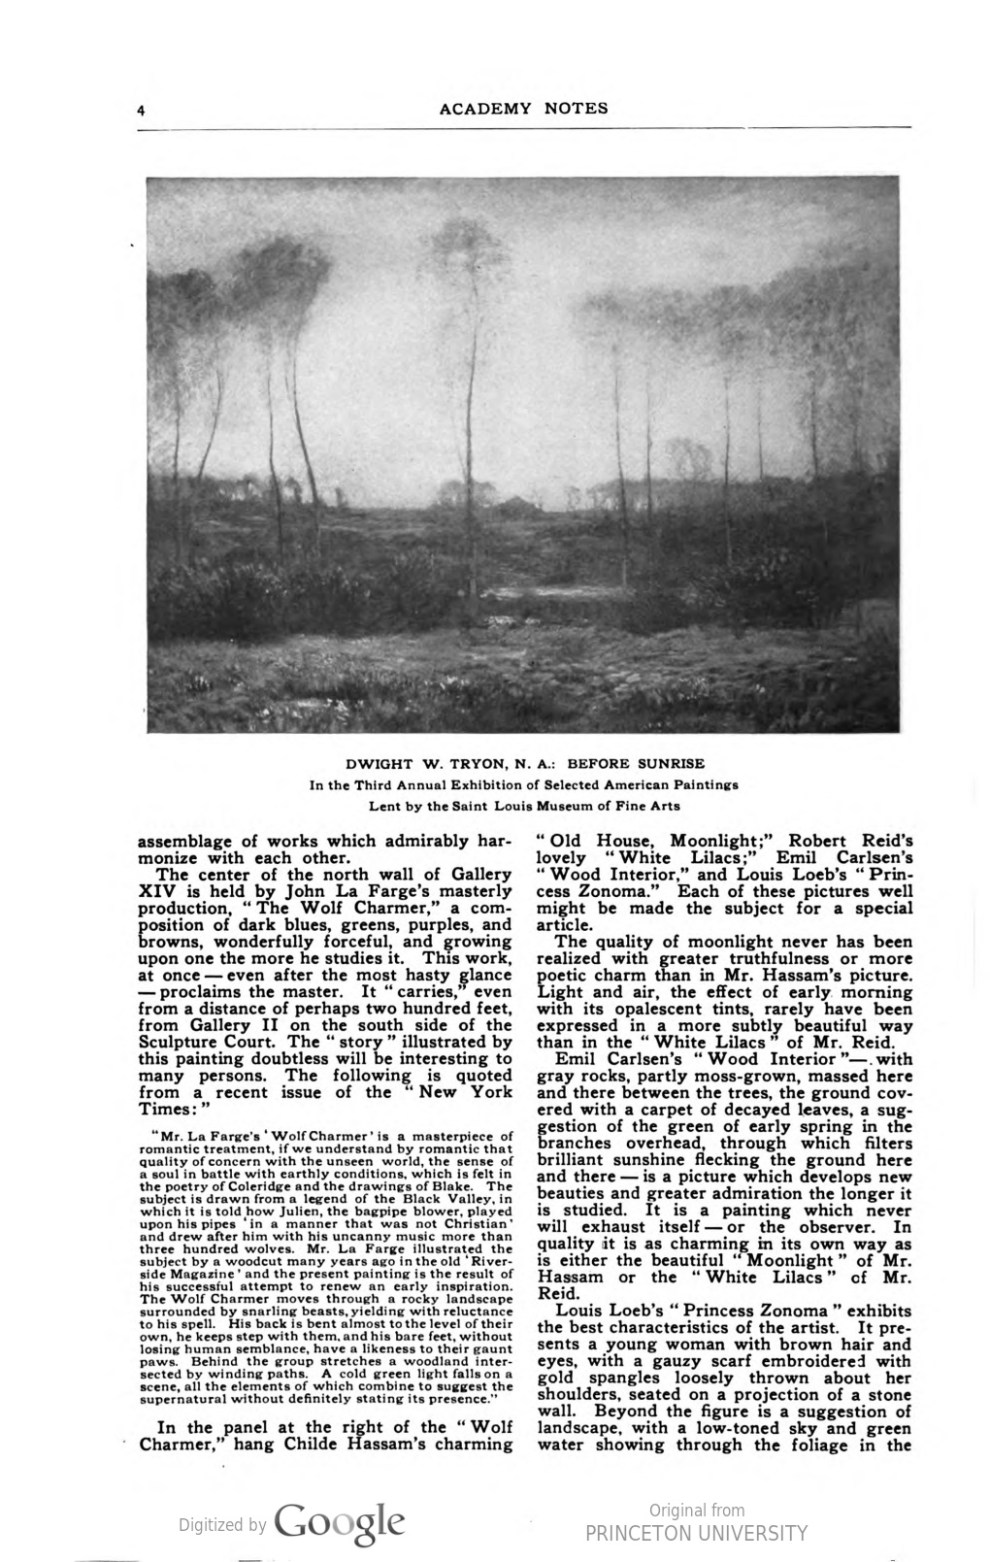 """Academy Notes, Buffalo Fine Arts Academy, Albright Art Gallery, Buffalo, NY, """"Third Annual Exhibition Selected American Paintings at the Albright Art Gallery First Paper"""", June, 1908, Volume 4, Number 1, page 1-7, not illustrated"""